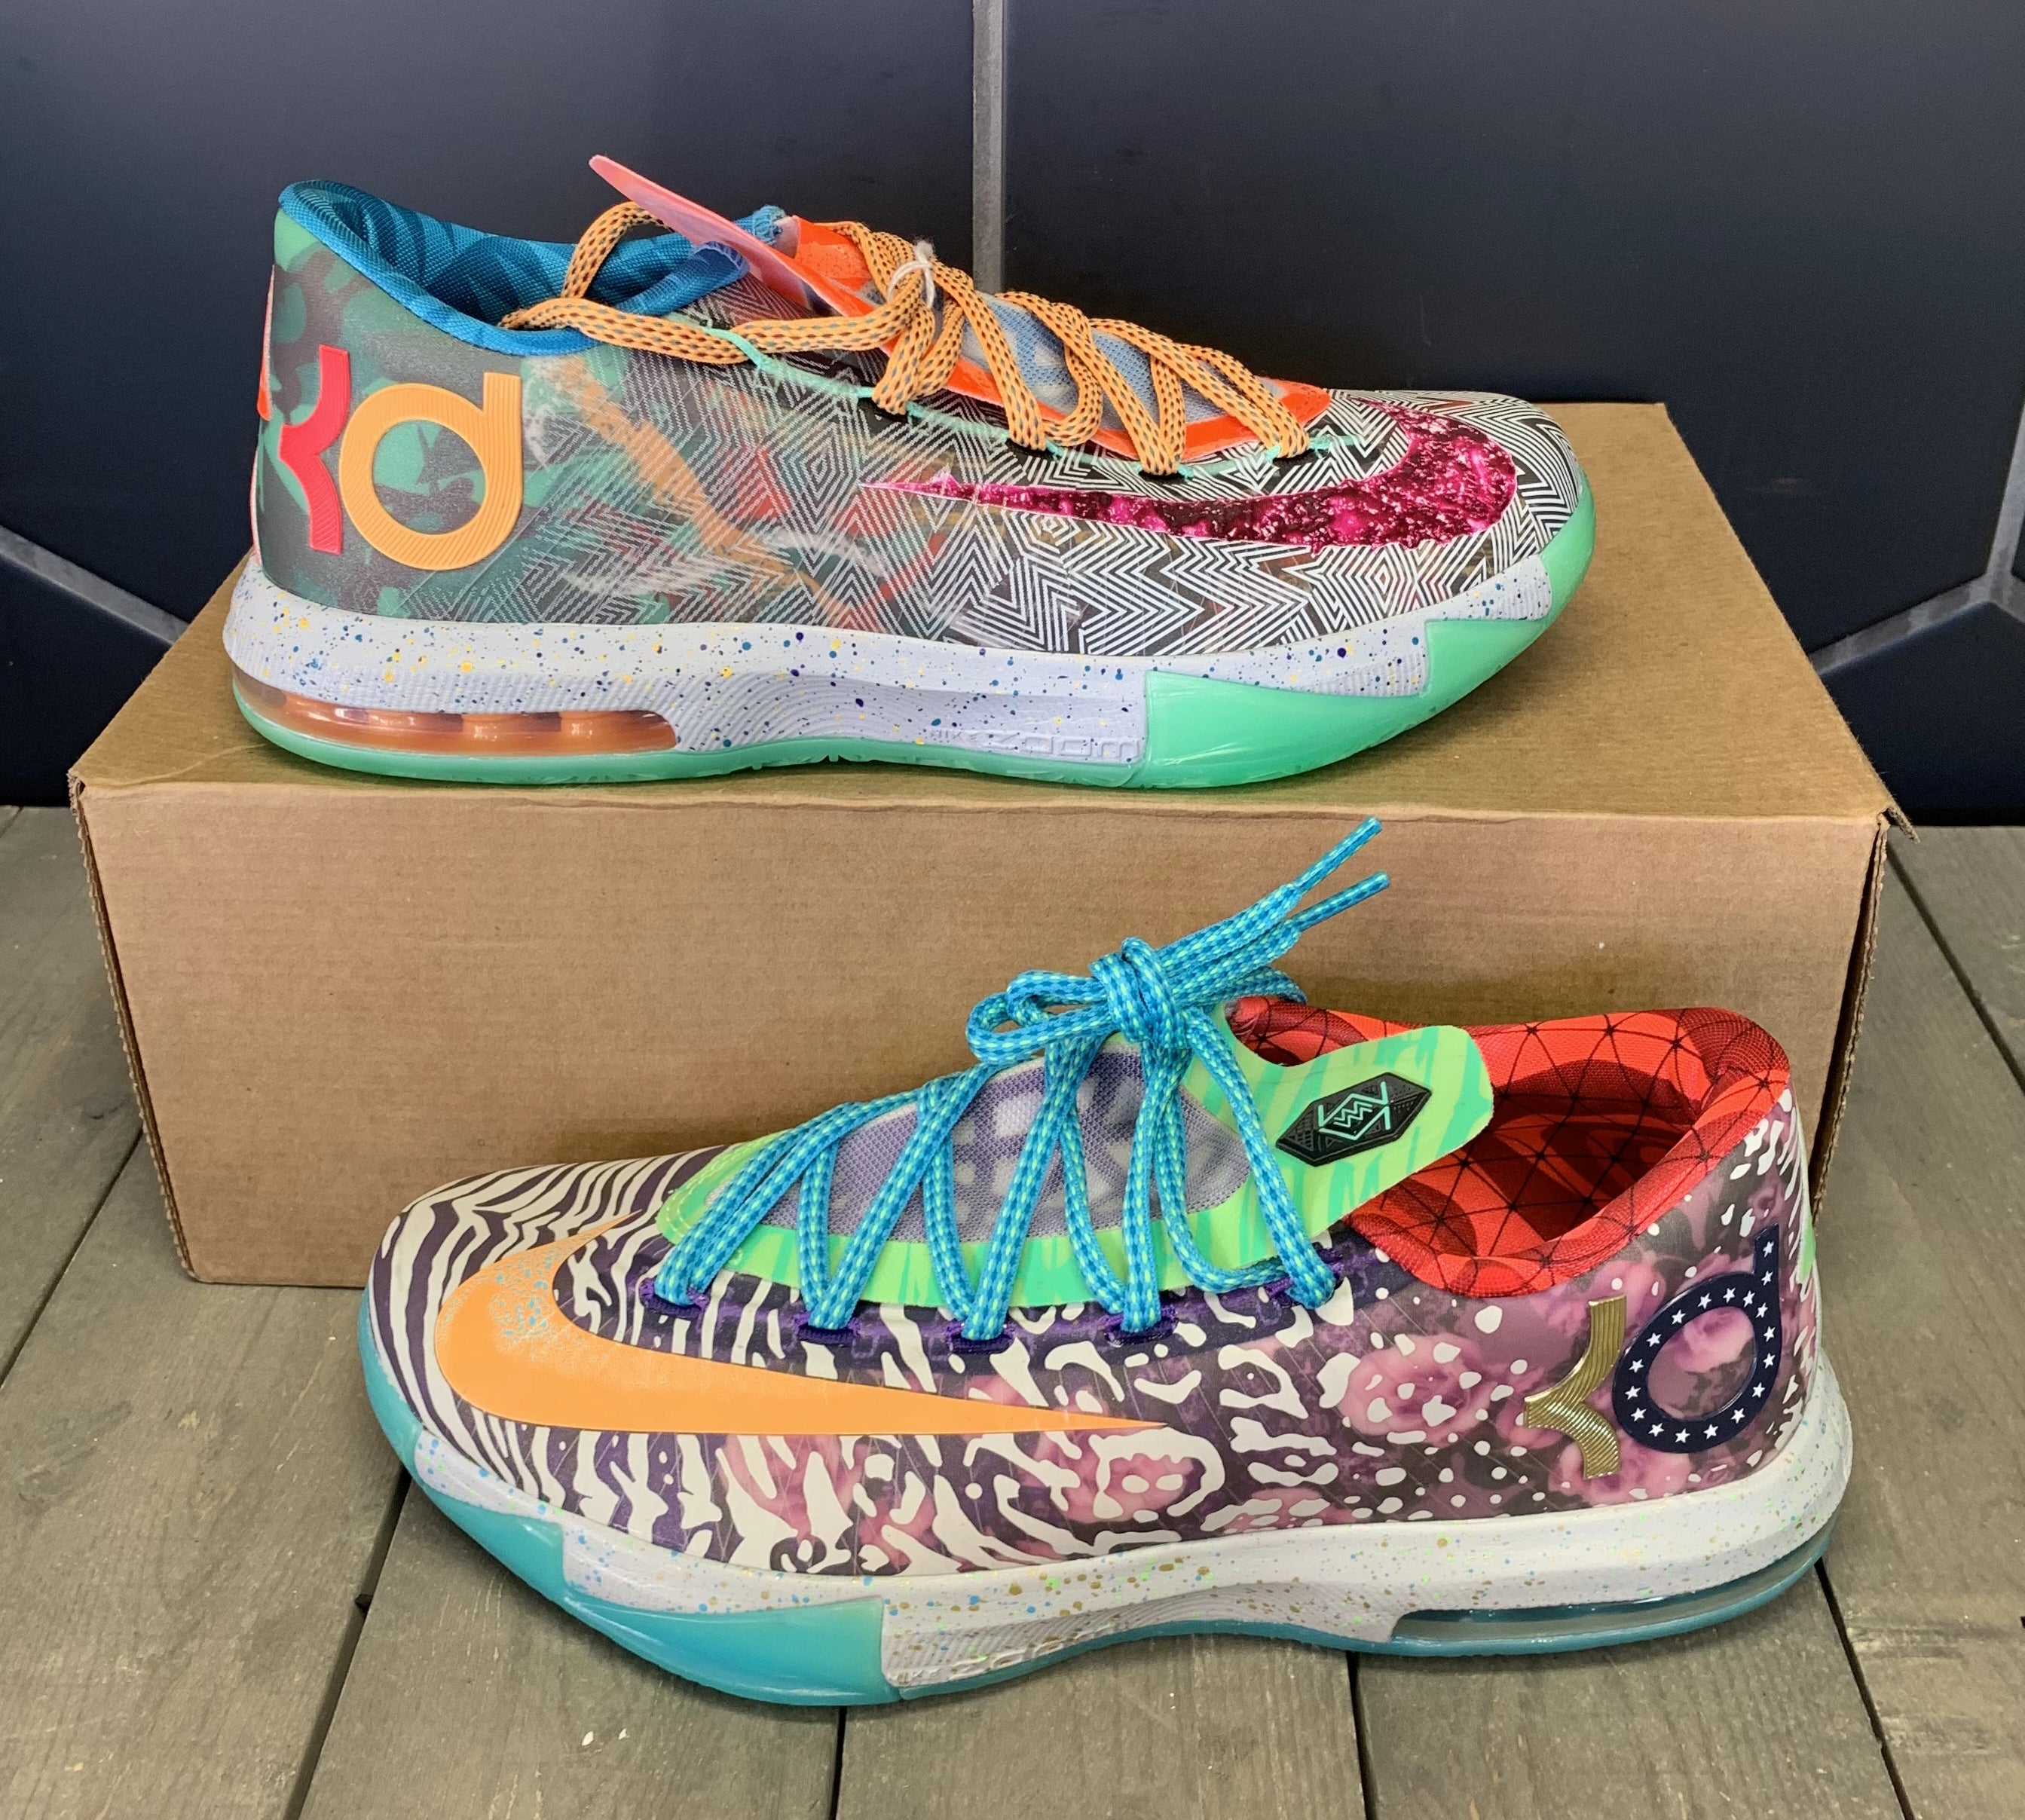 New W/O Box! Nike Kevin Durant 6 VI What The KD Size 8